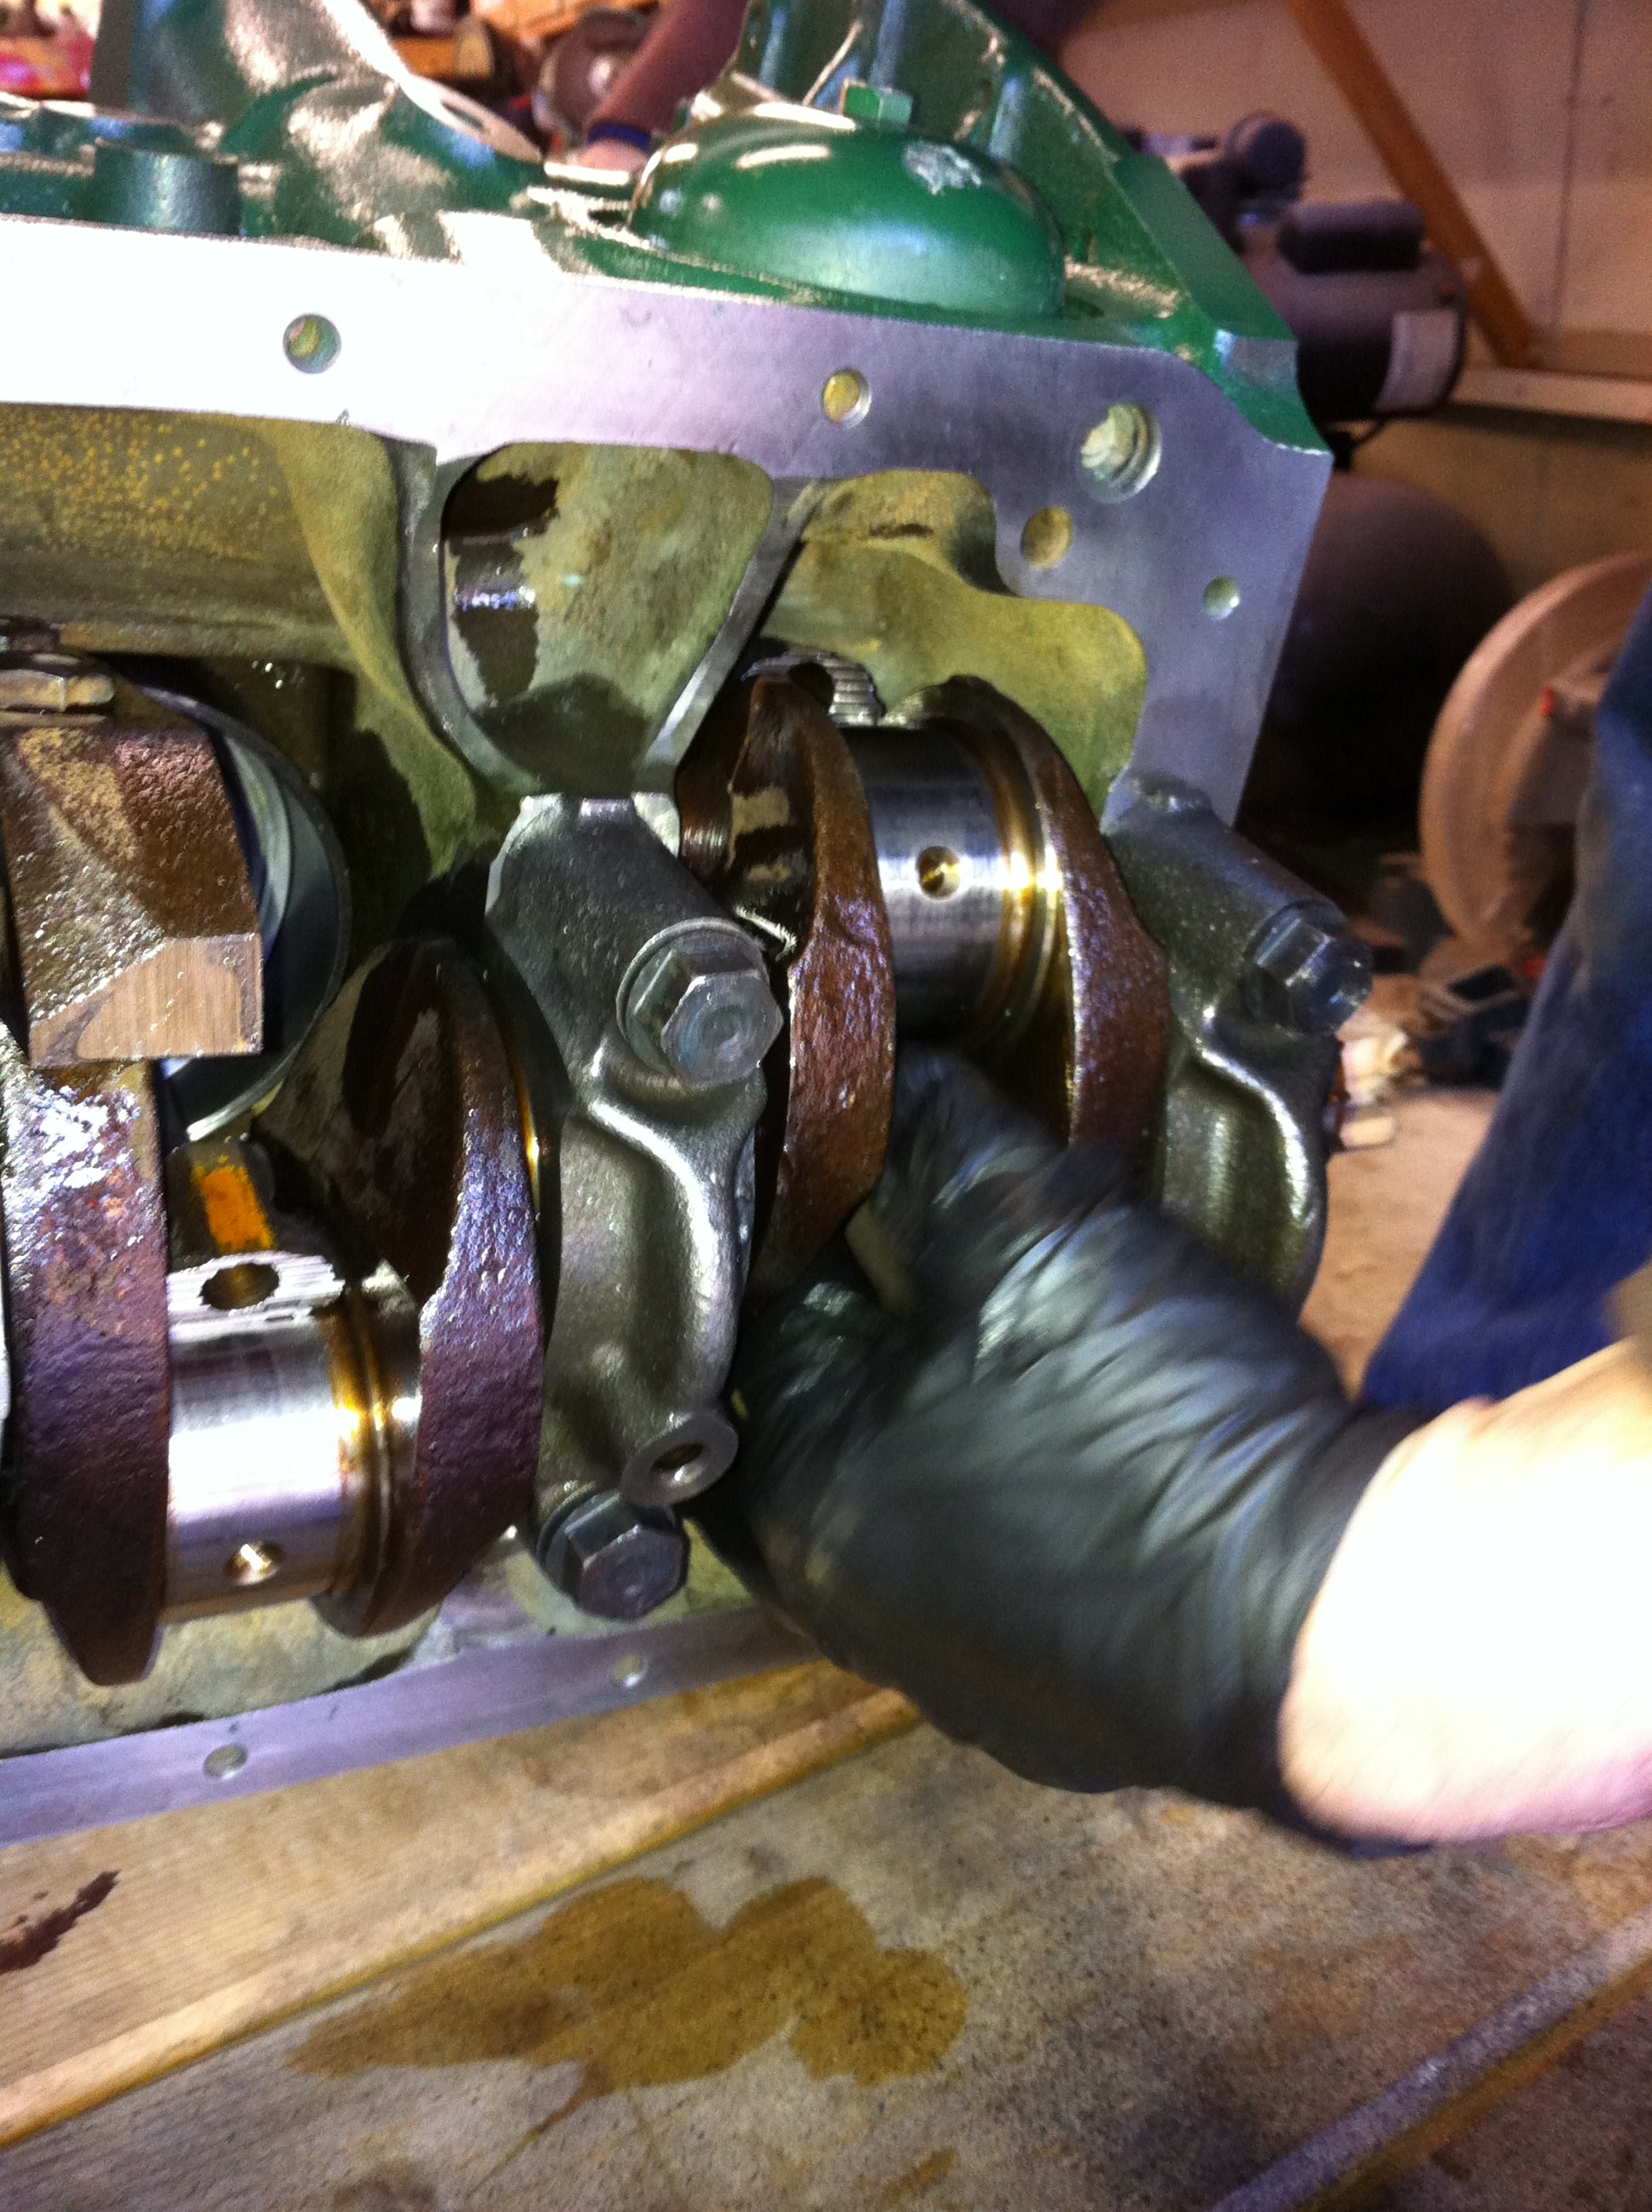 Lining up the rods with the crank journals